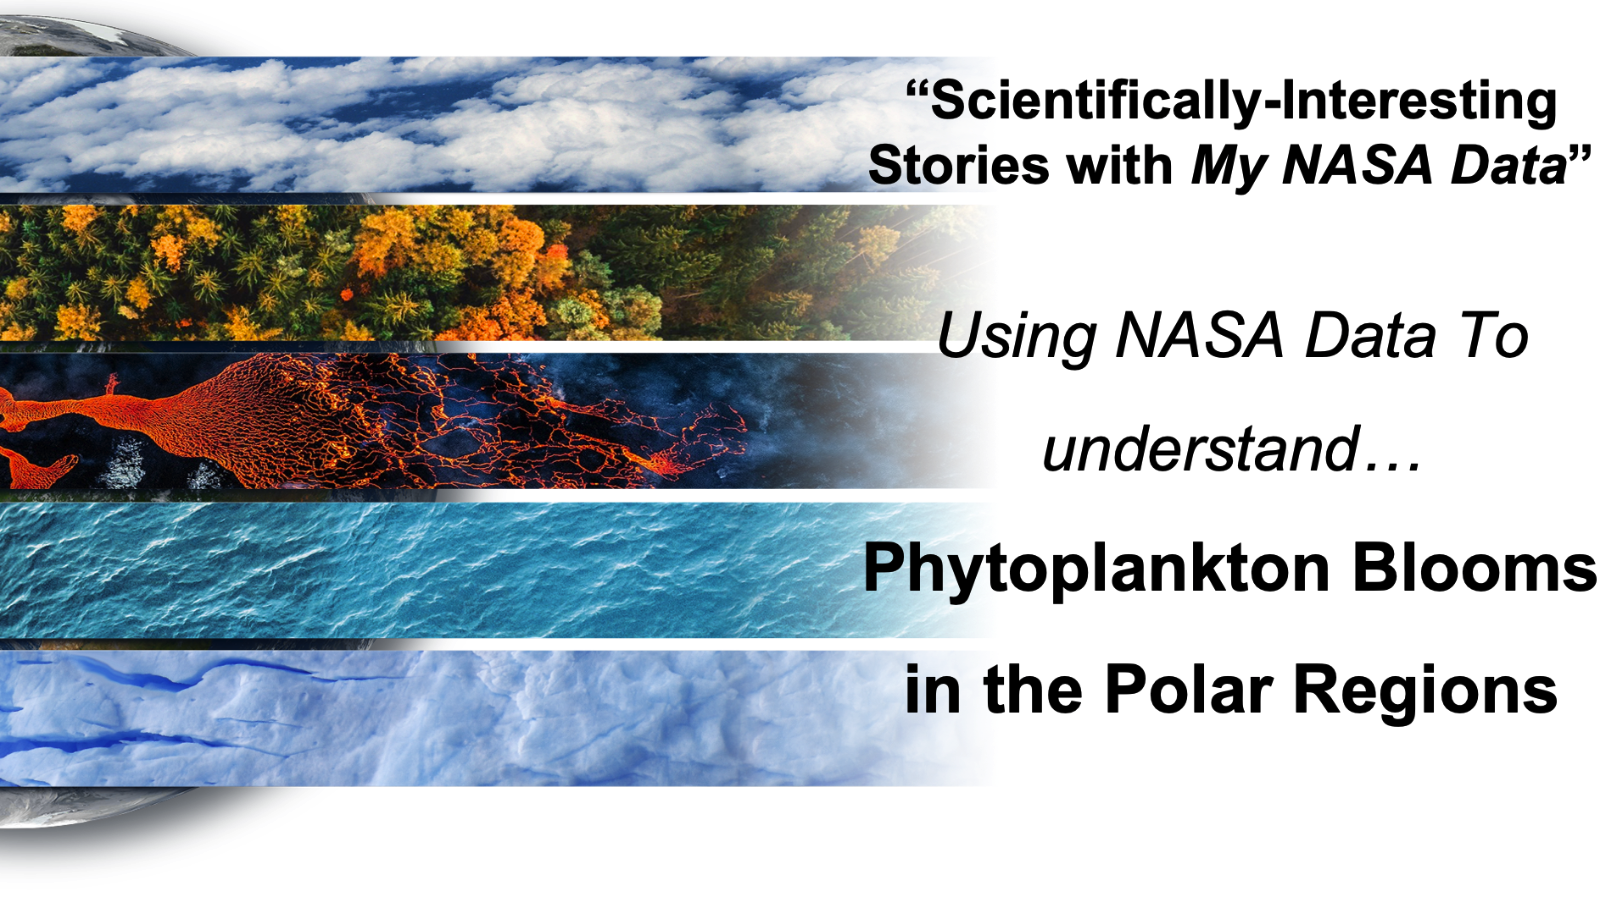 Scientifically-Interesting Storyline of Phytoplankton Blooms in the Polar Regions